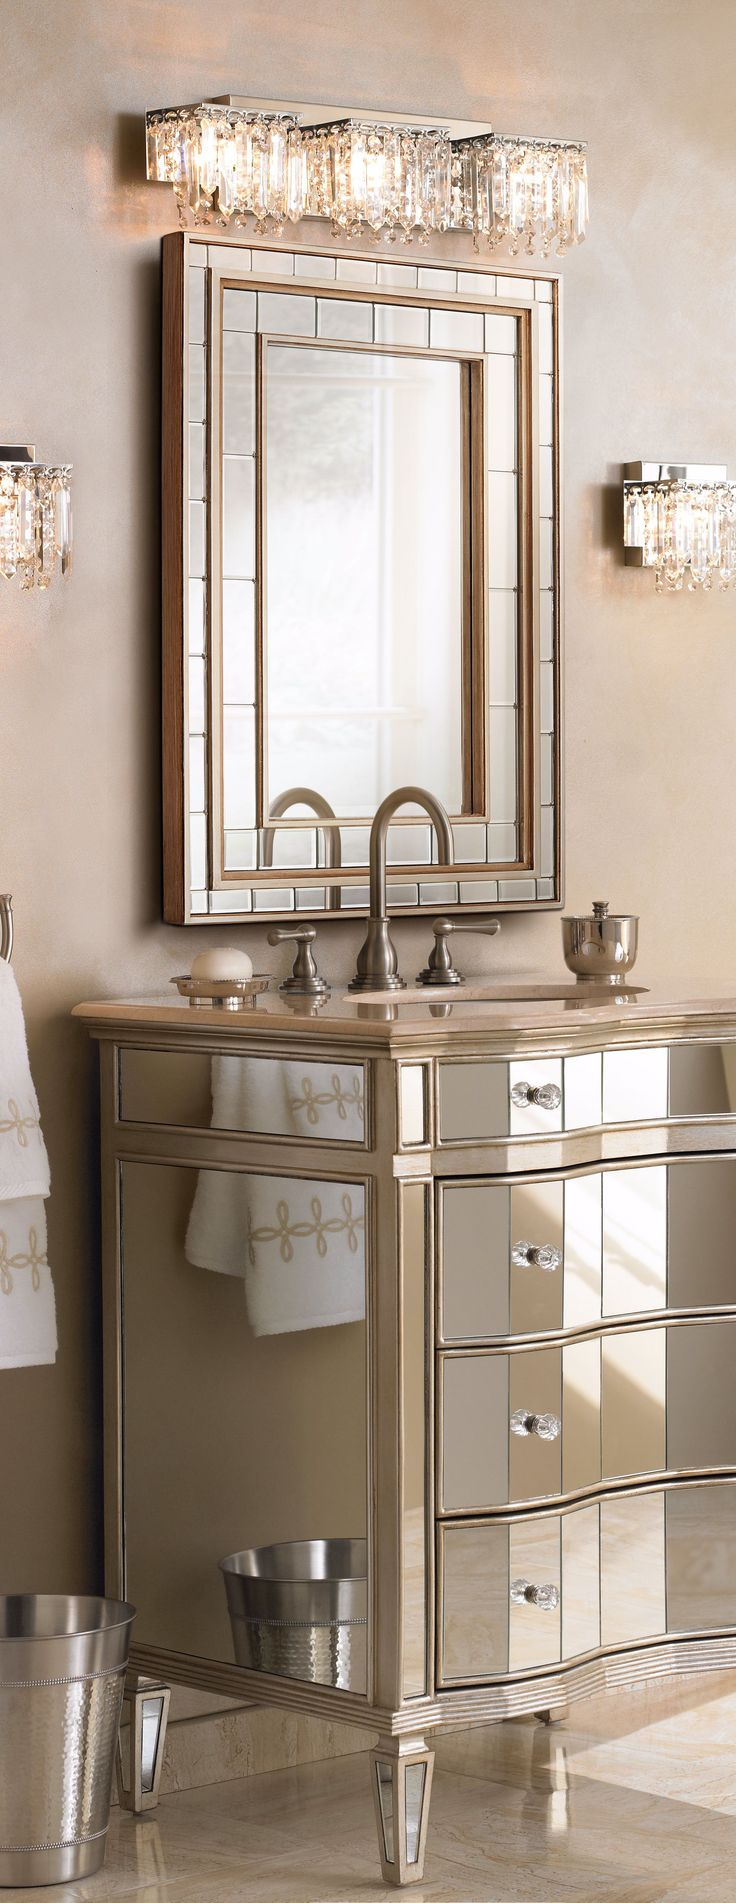 Bathroom Sink Vanity Ideas Only Onbathroom